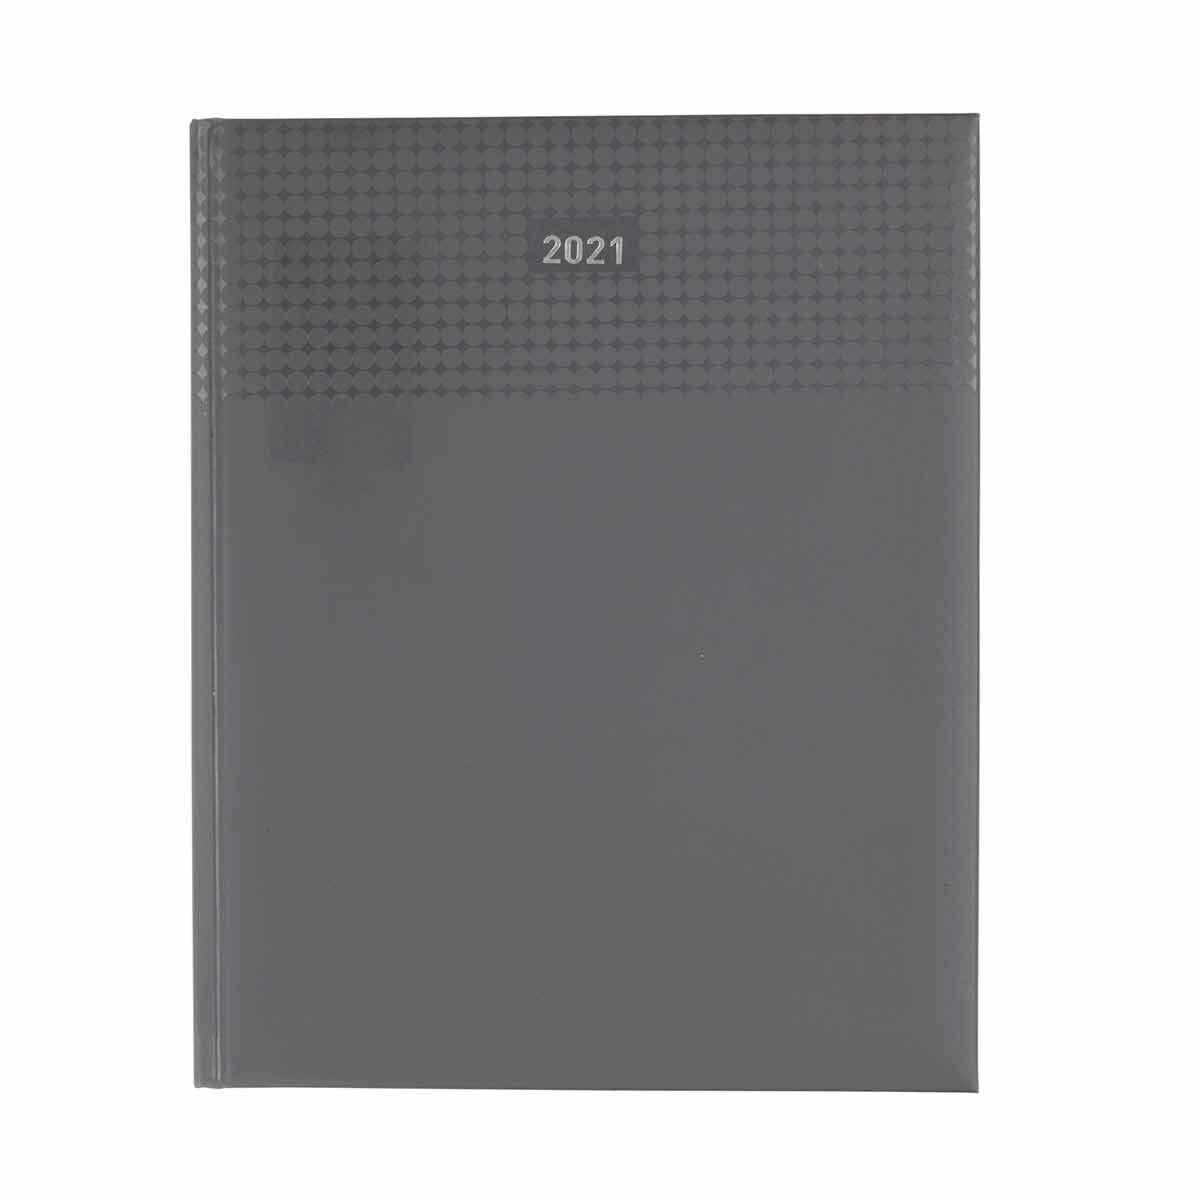 Ryman Langham Quarto Diary Week to View 2021 Grey